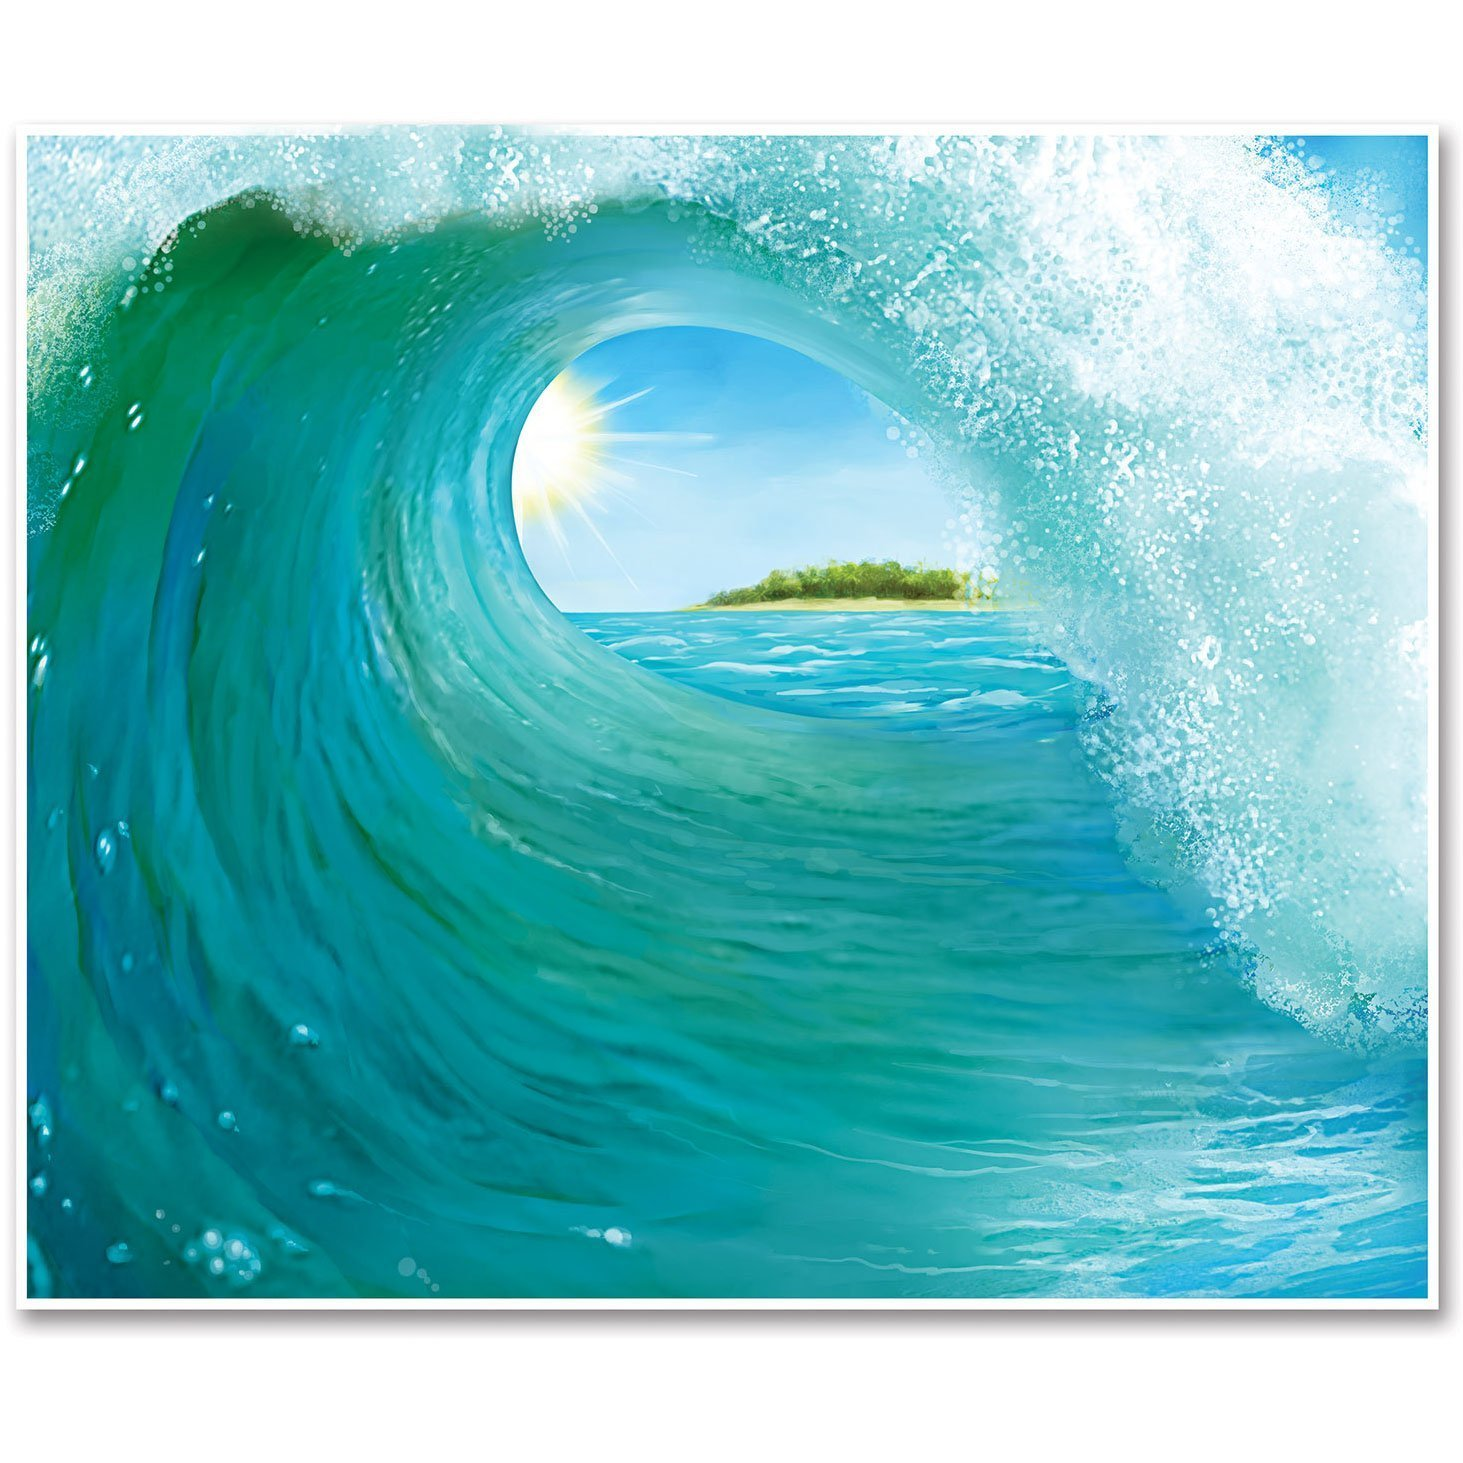 Amazon beistle 52151 surf wave insta mural 5 feet by 6 feet amazon beistle 52151 surf wave insta mural 5 feet by 6 feet kitchen dining amipublicfo Choice Image